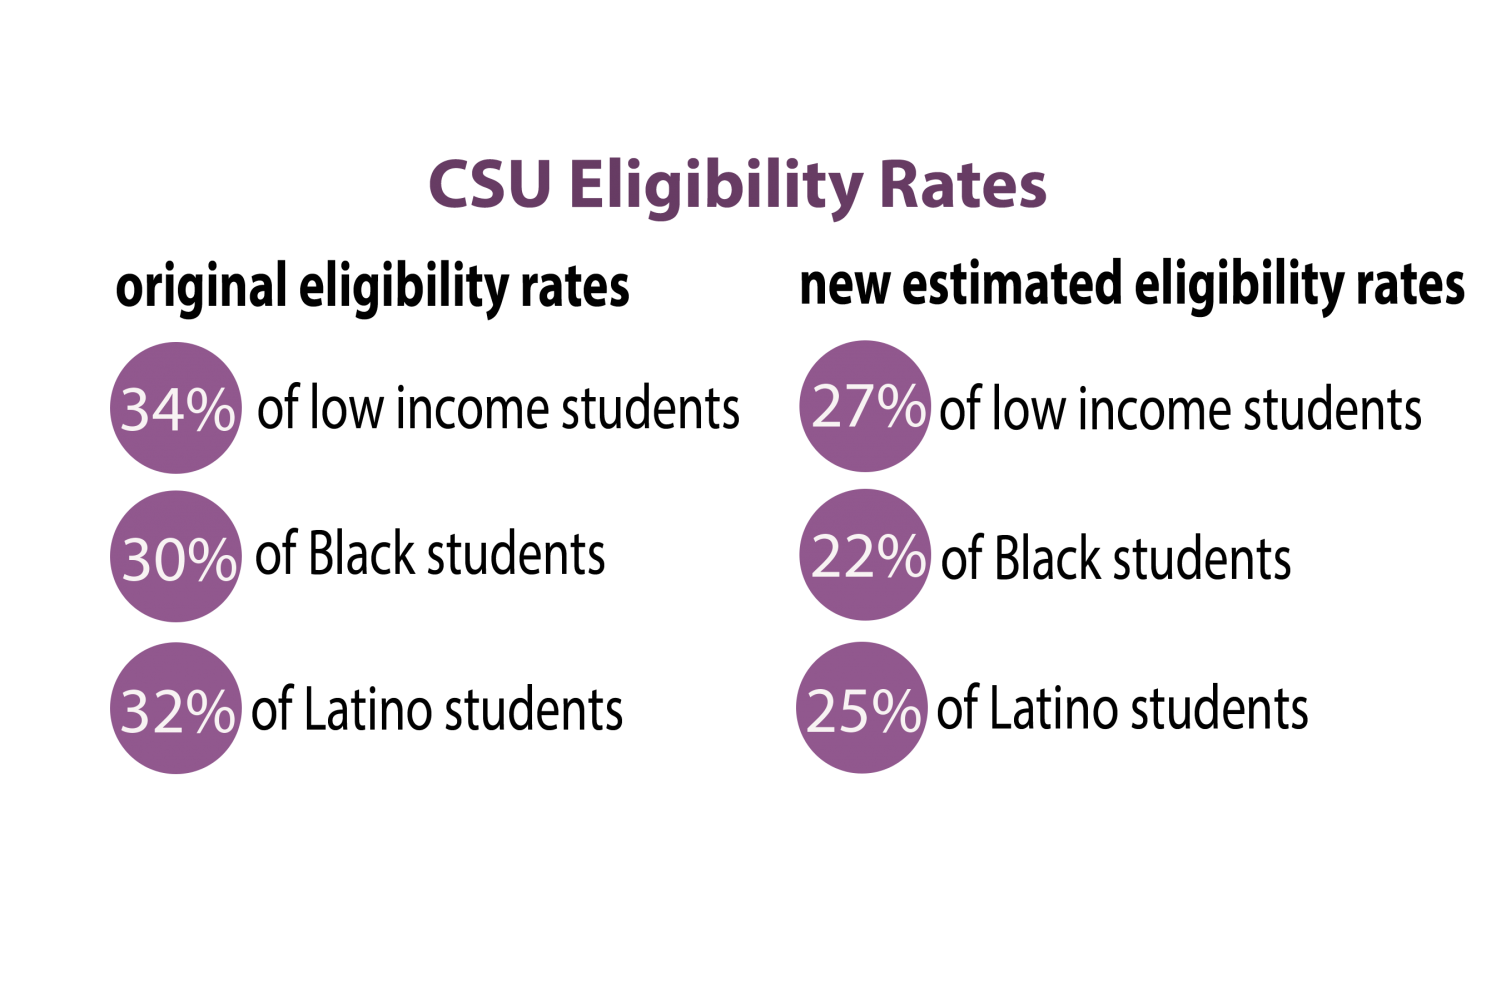 Eligibility rates for the California State University system with the new quantitative reasoning requirements are predicted to be lower than current rates.